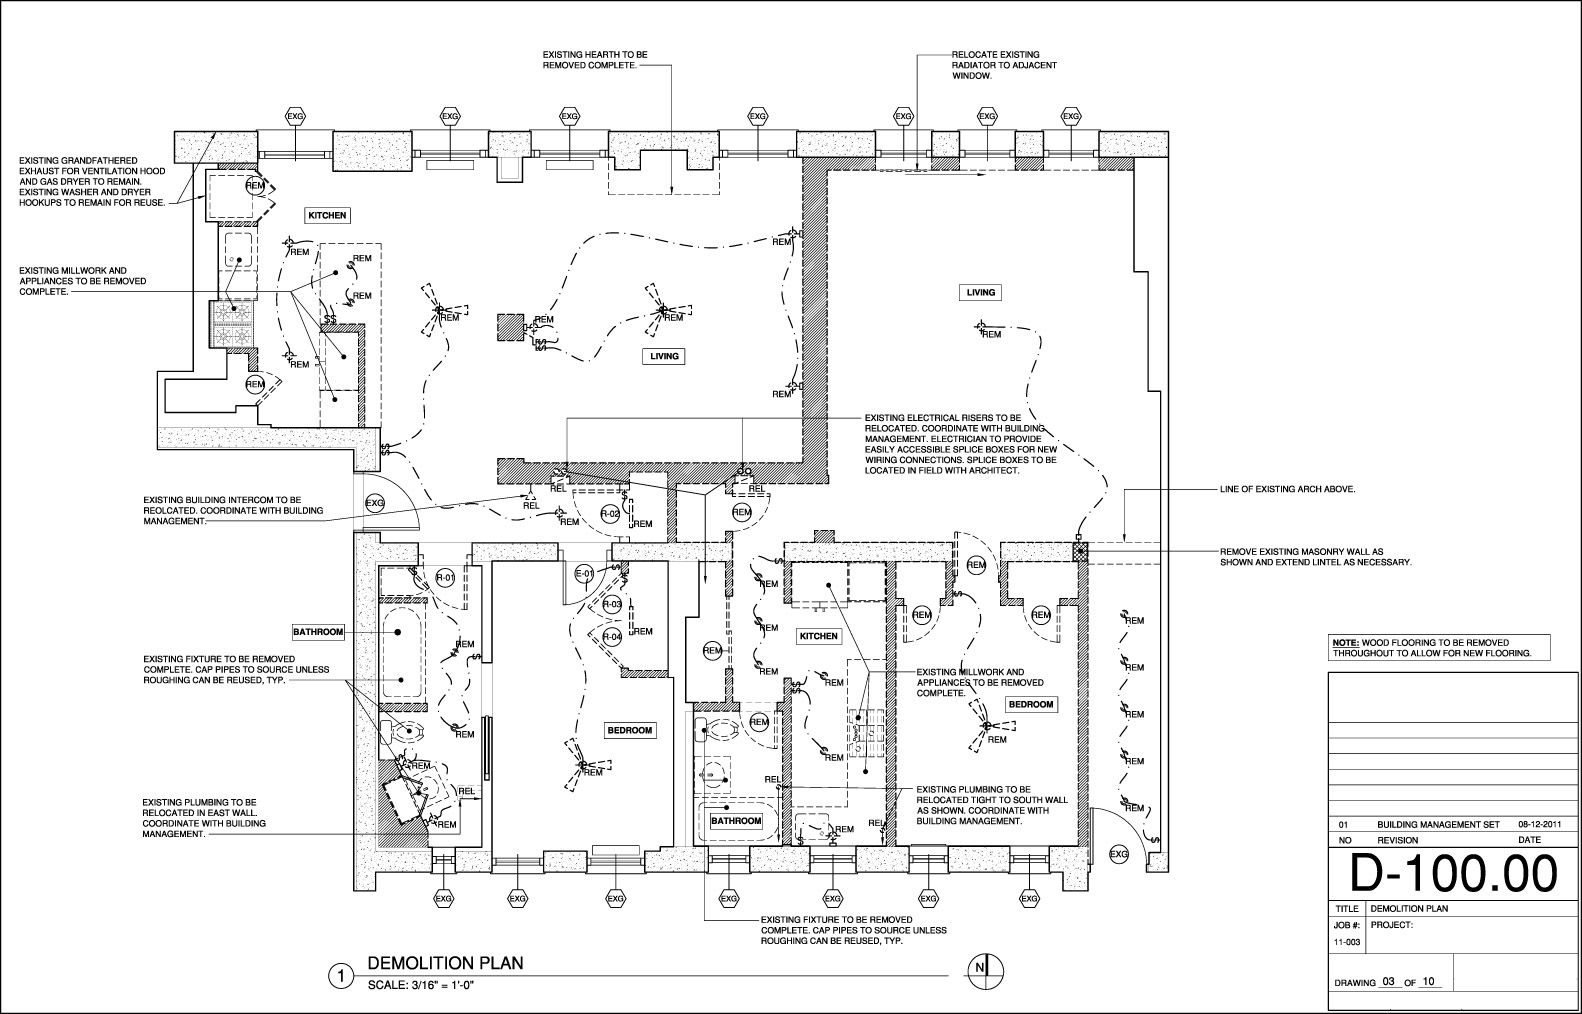 Building Demolition Drawing : Demolition plan construction documents pinterest